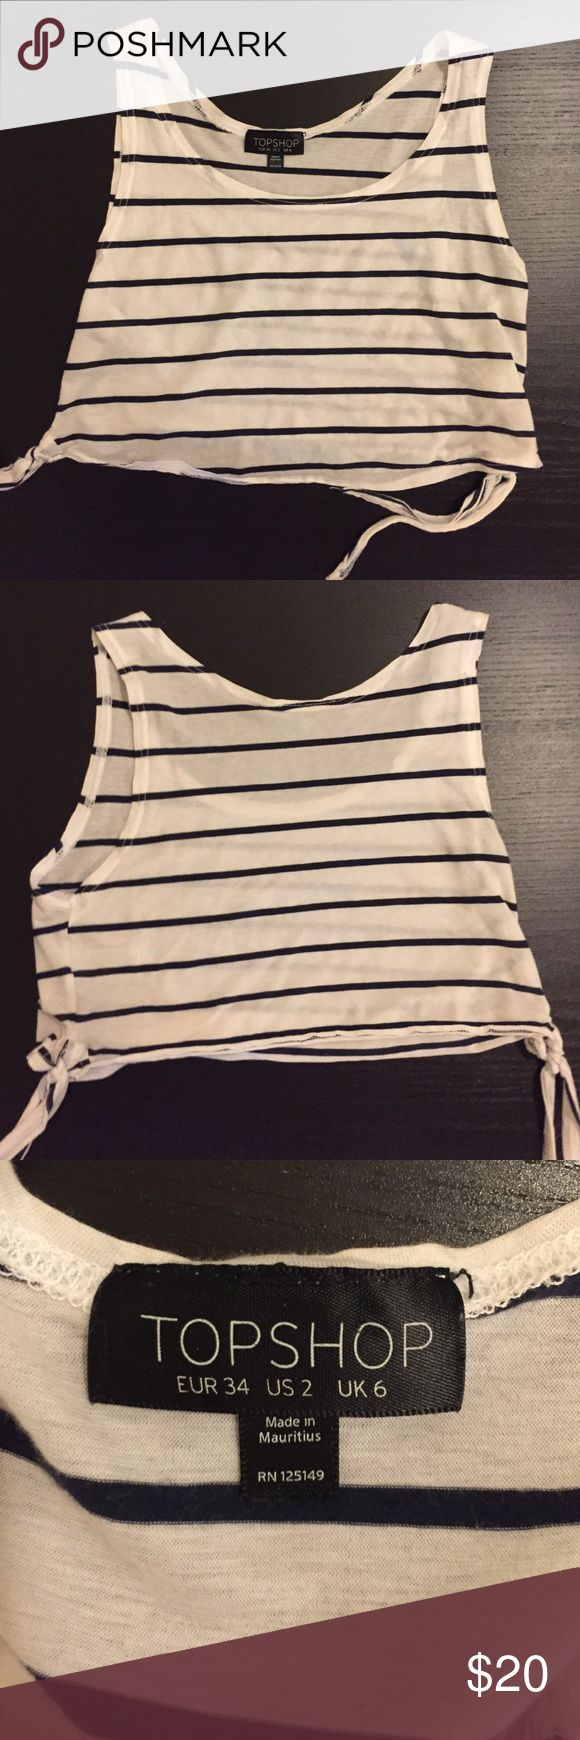 Topshop nautical crop top Navy and white striped crop top with tie embellishment on sides! Barely ever worn, like new condition Topshop Tops Crop Tops